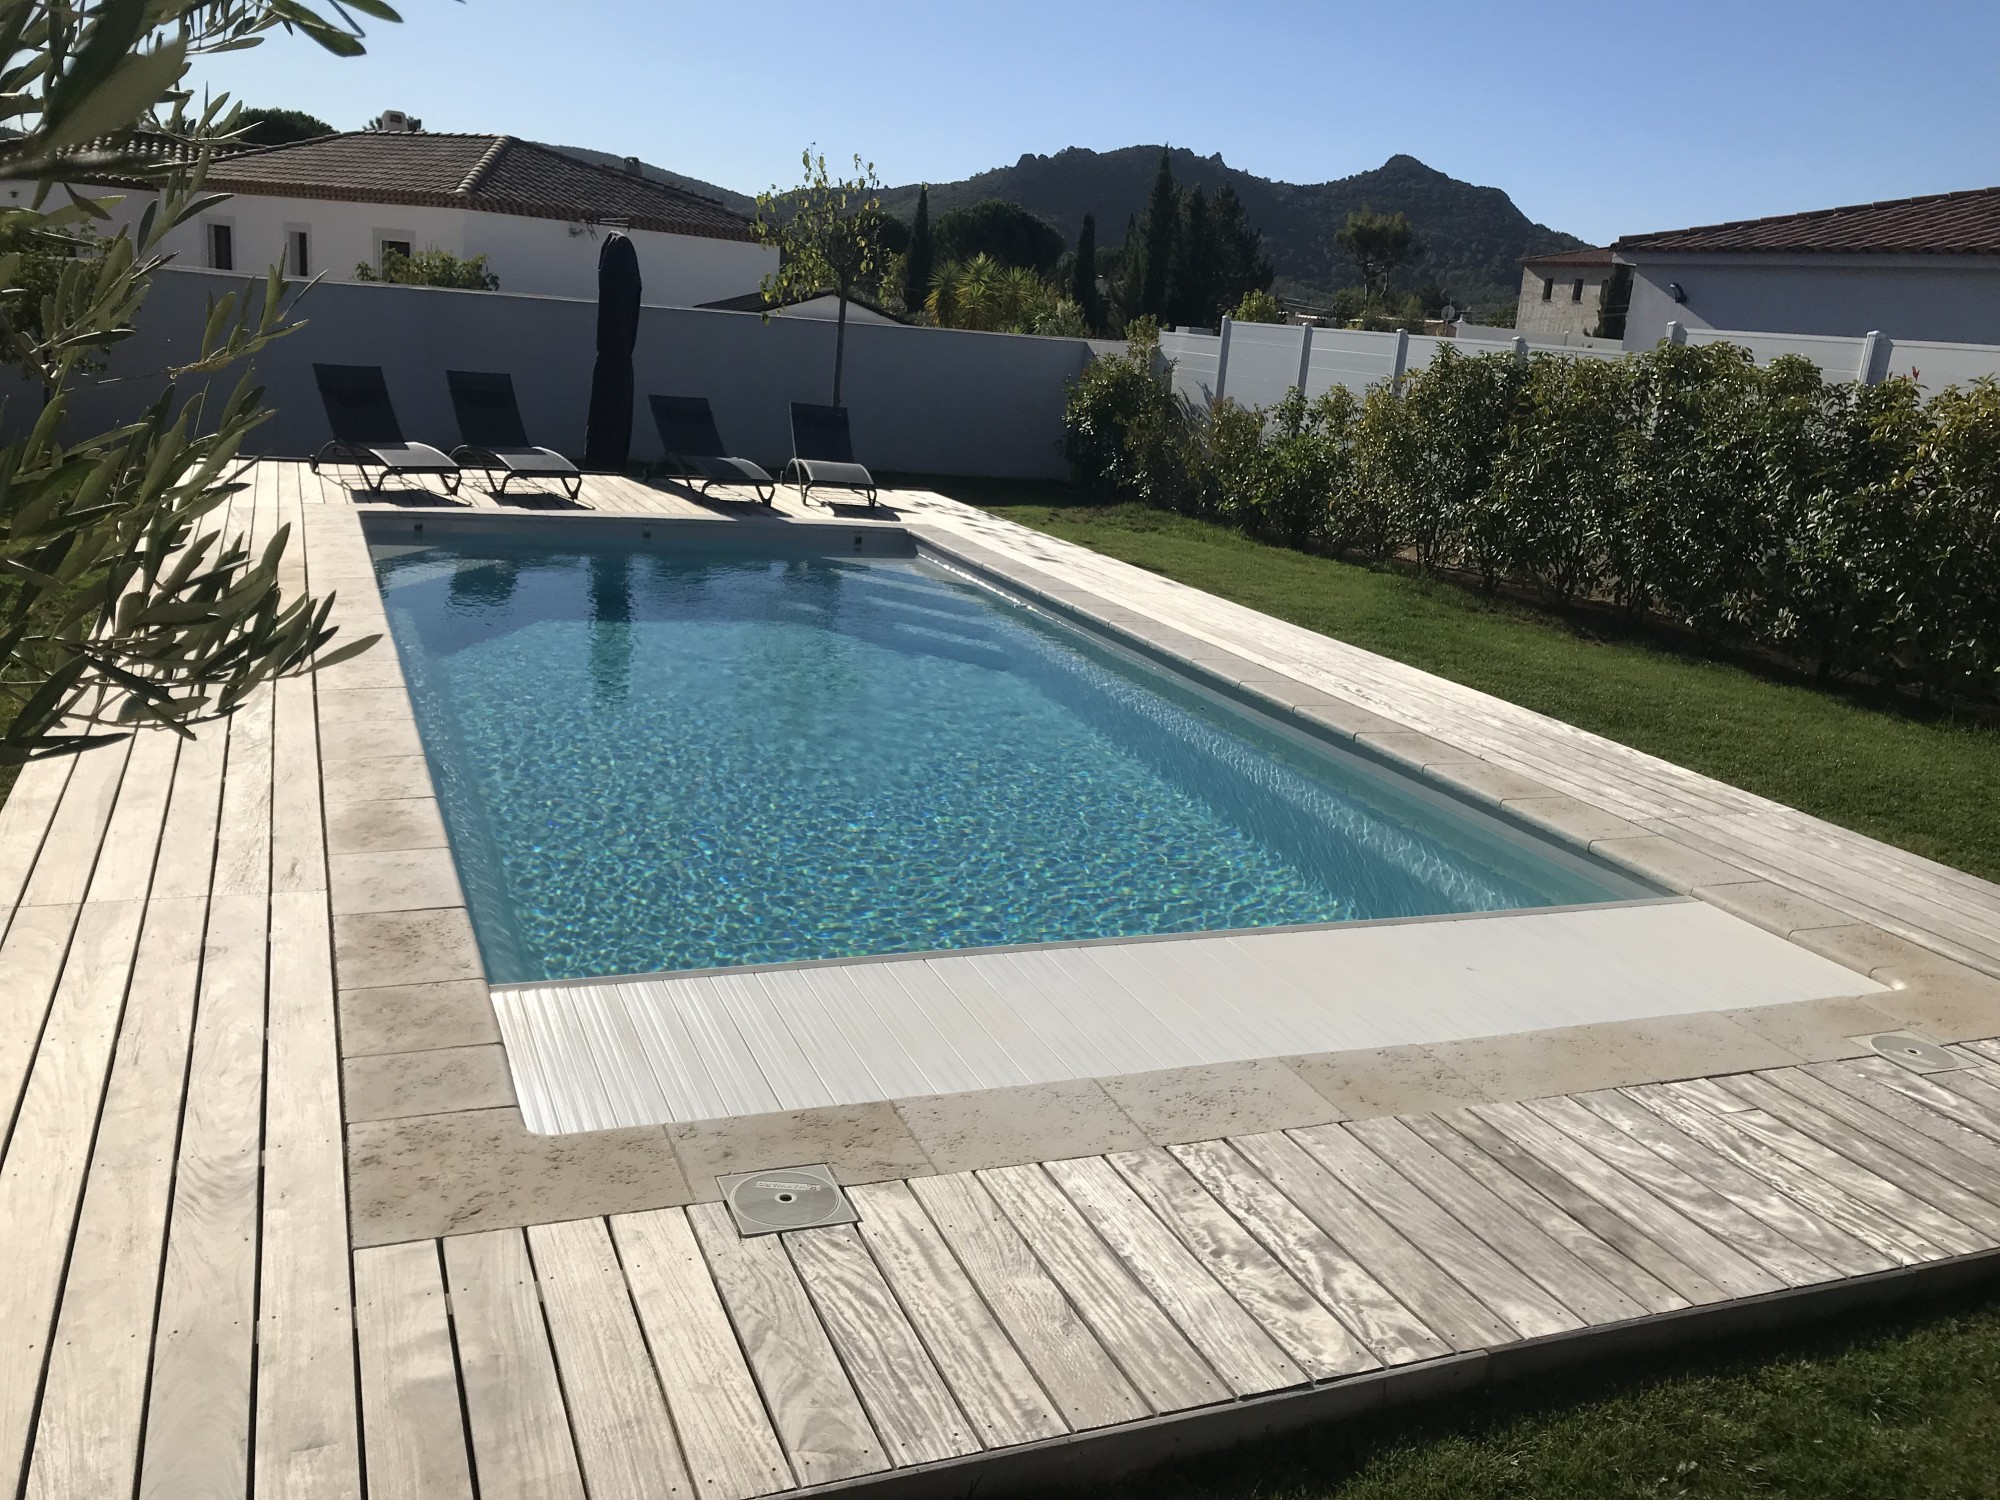 installation de piscines cuers alliance piscines toulon. Black Bedroom Furniture Sets. Home Design Ideas